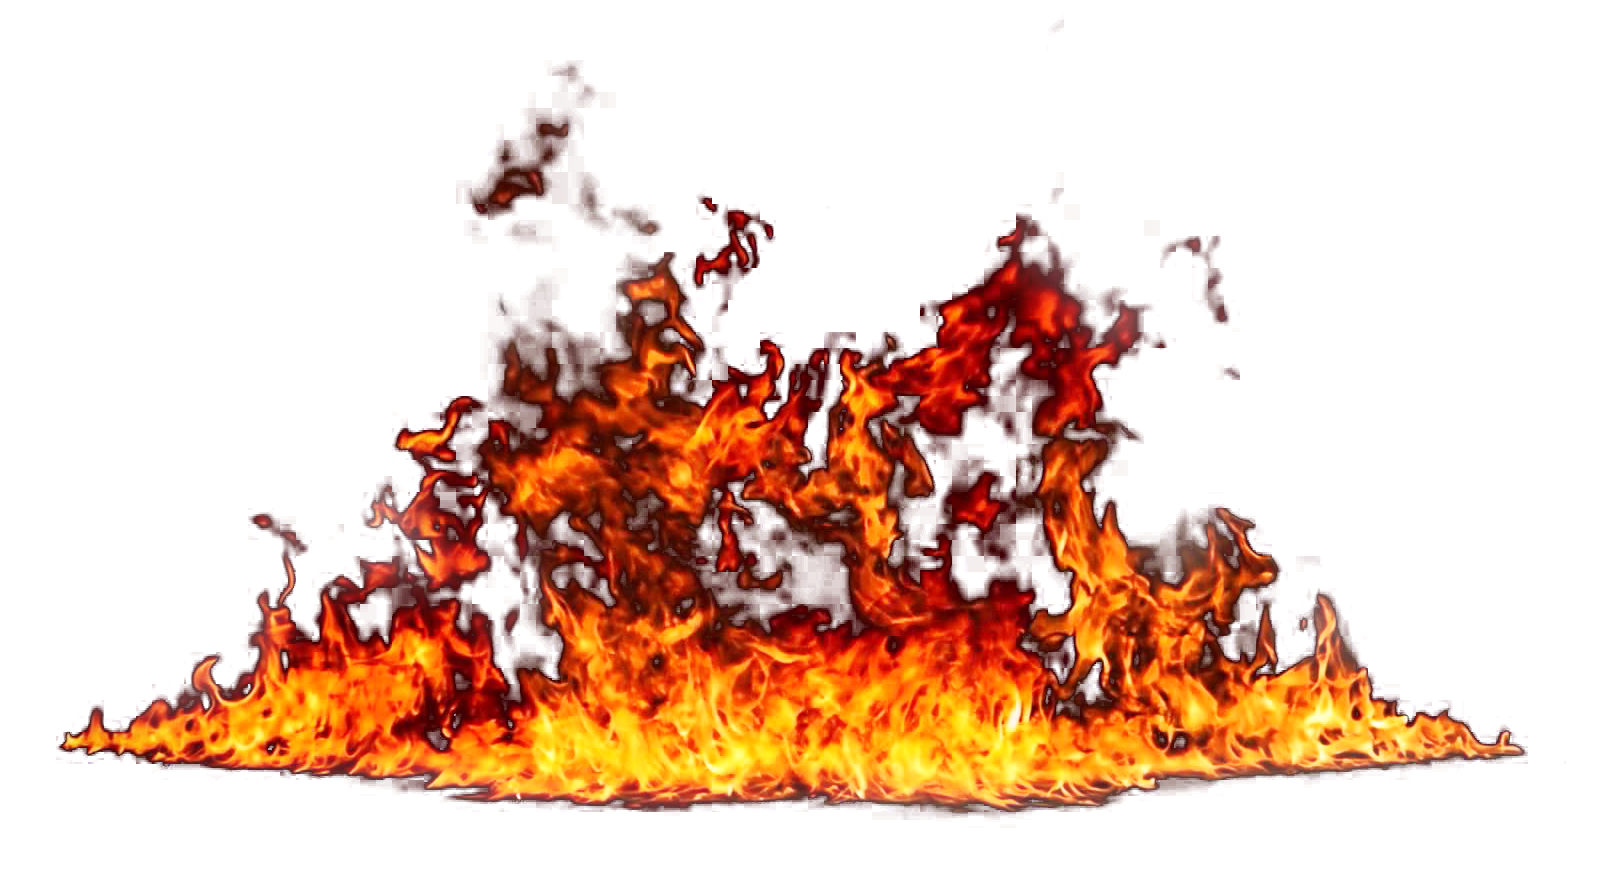 Big Fire Flame PNG Image #44303.